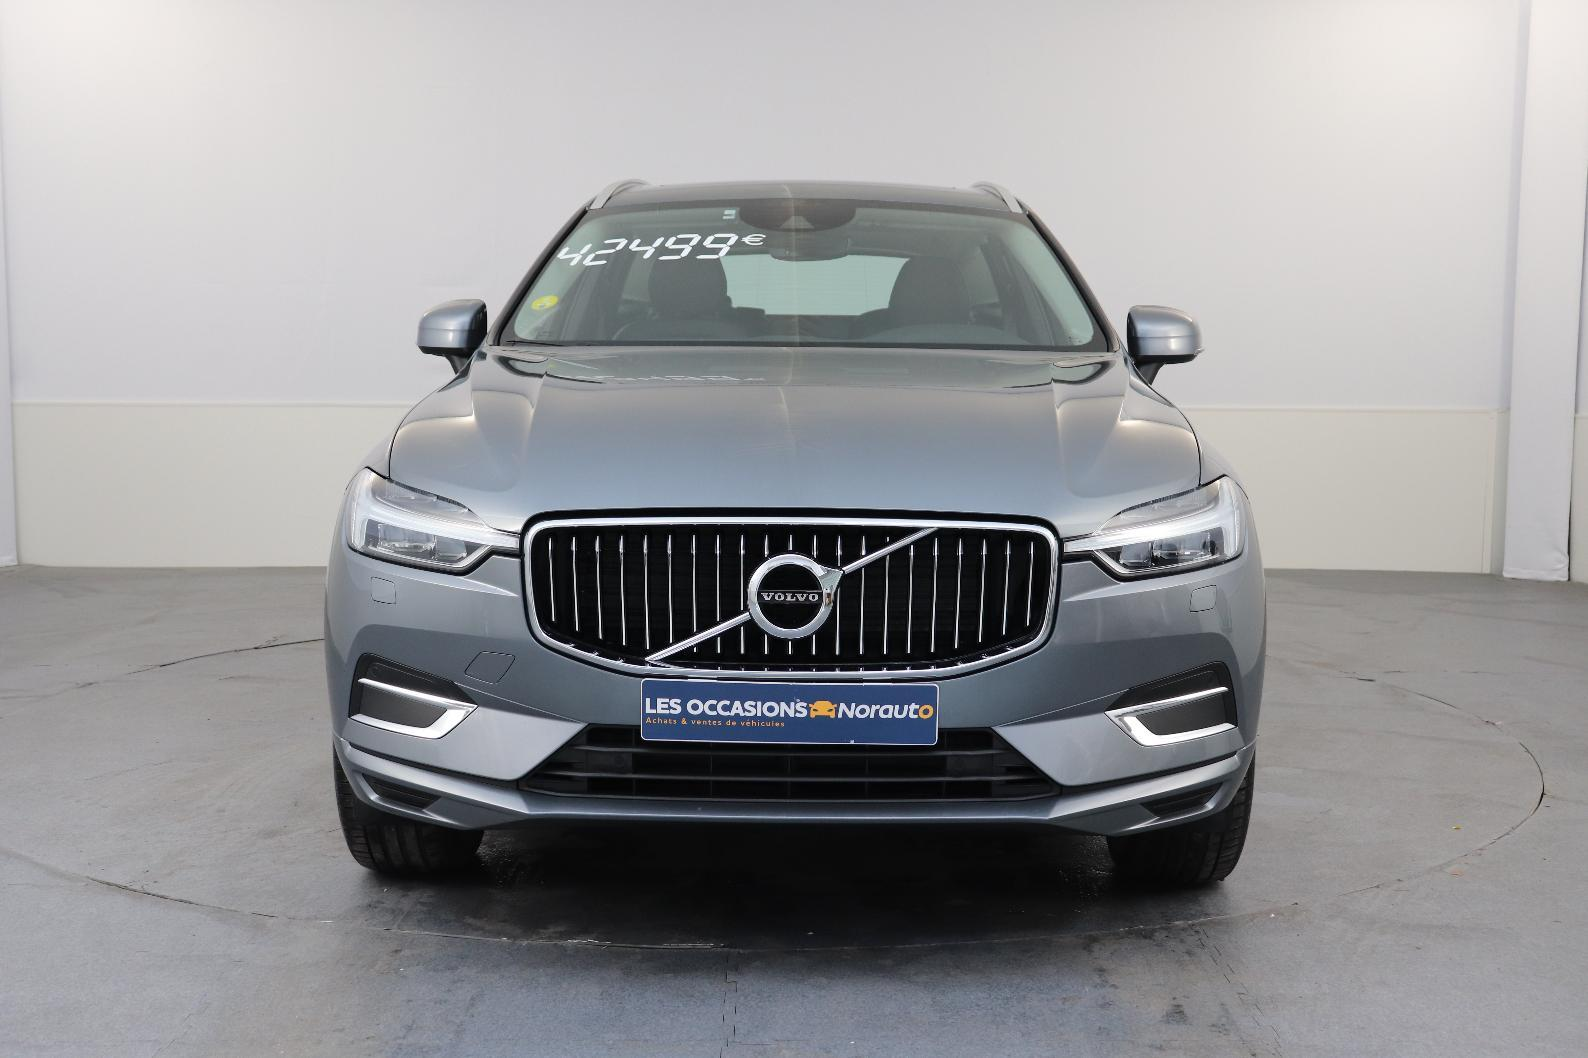 VOLVO XC60 D5 AWD AdBlue 235 ch Geartronic 8 Inscription Luxe